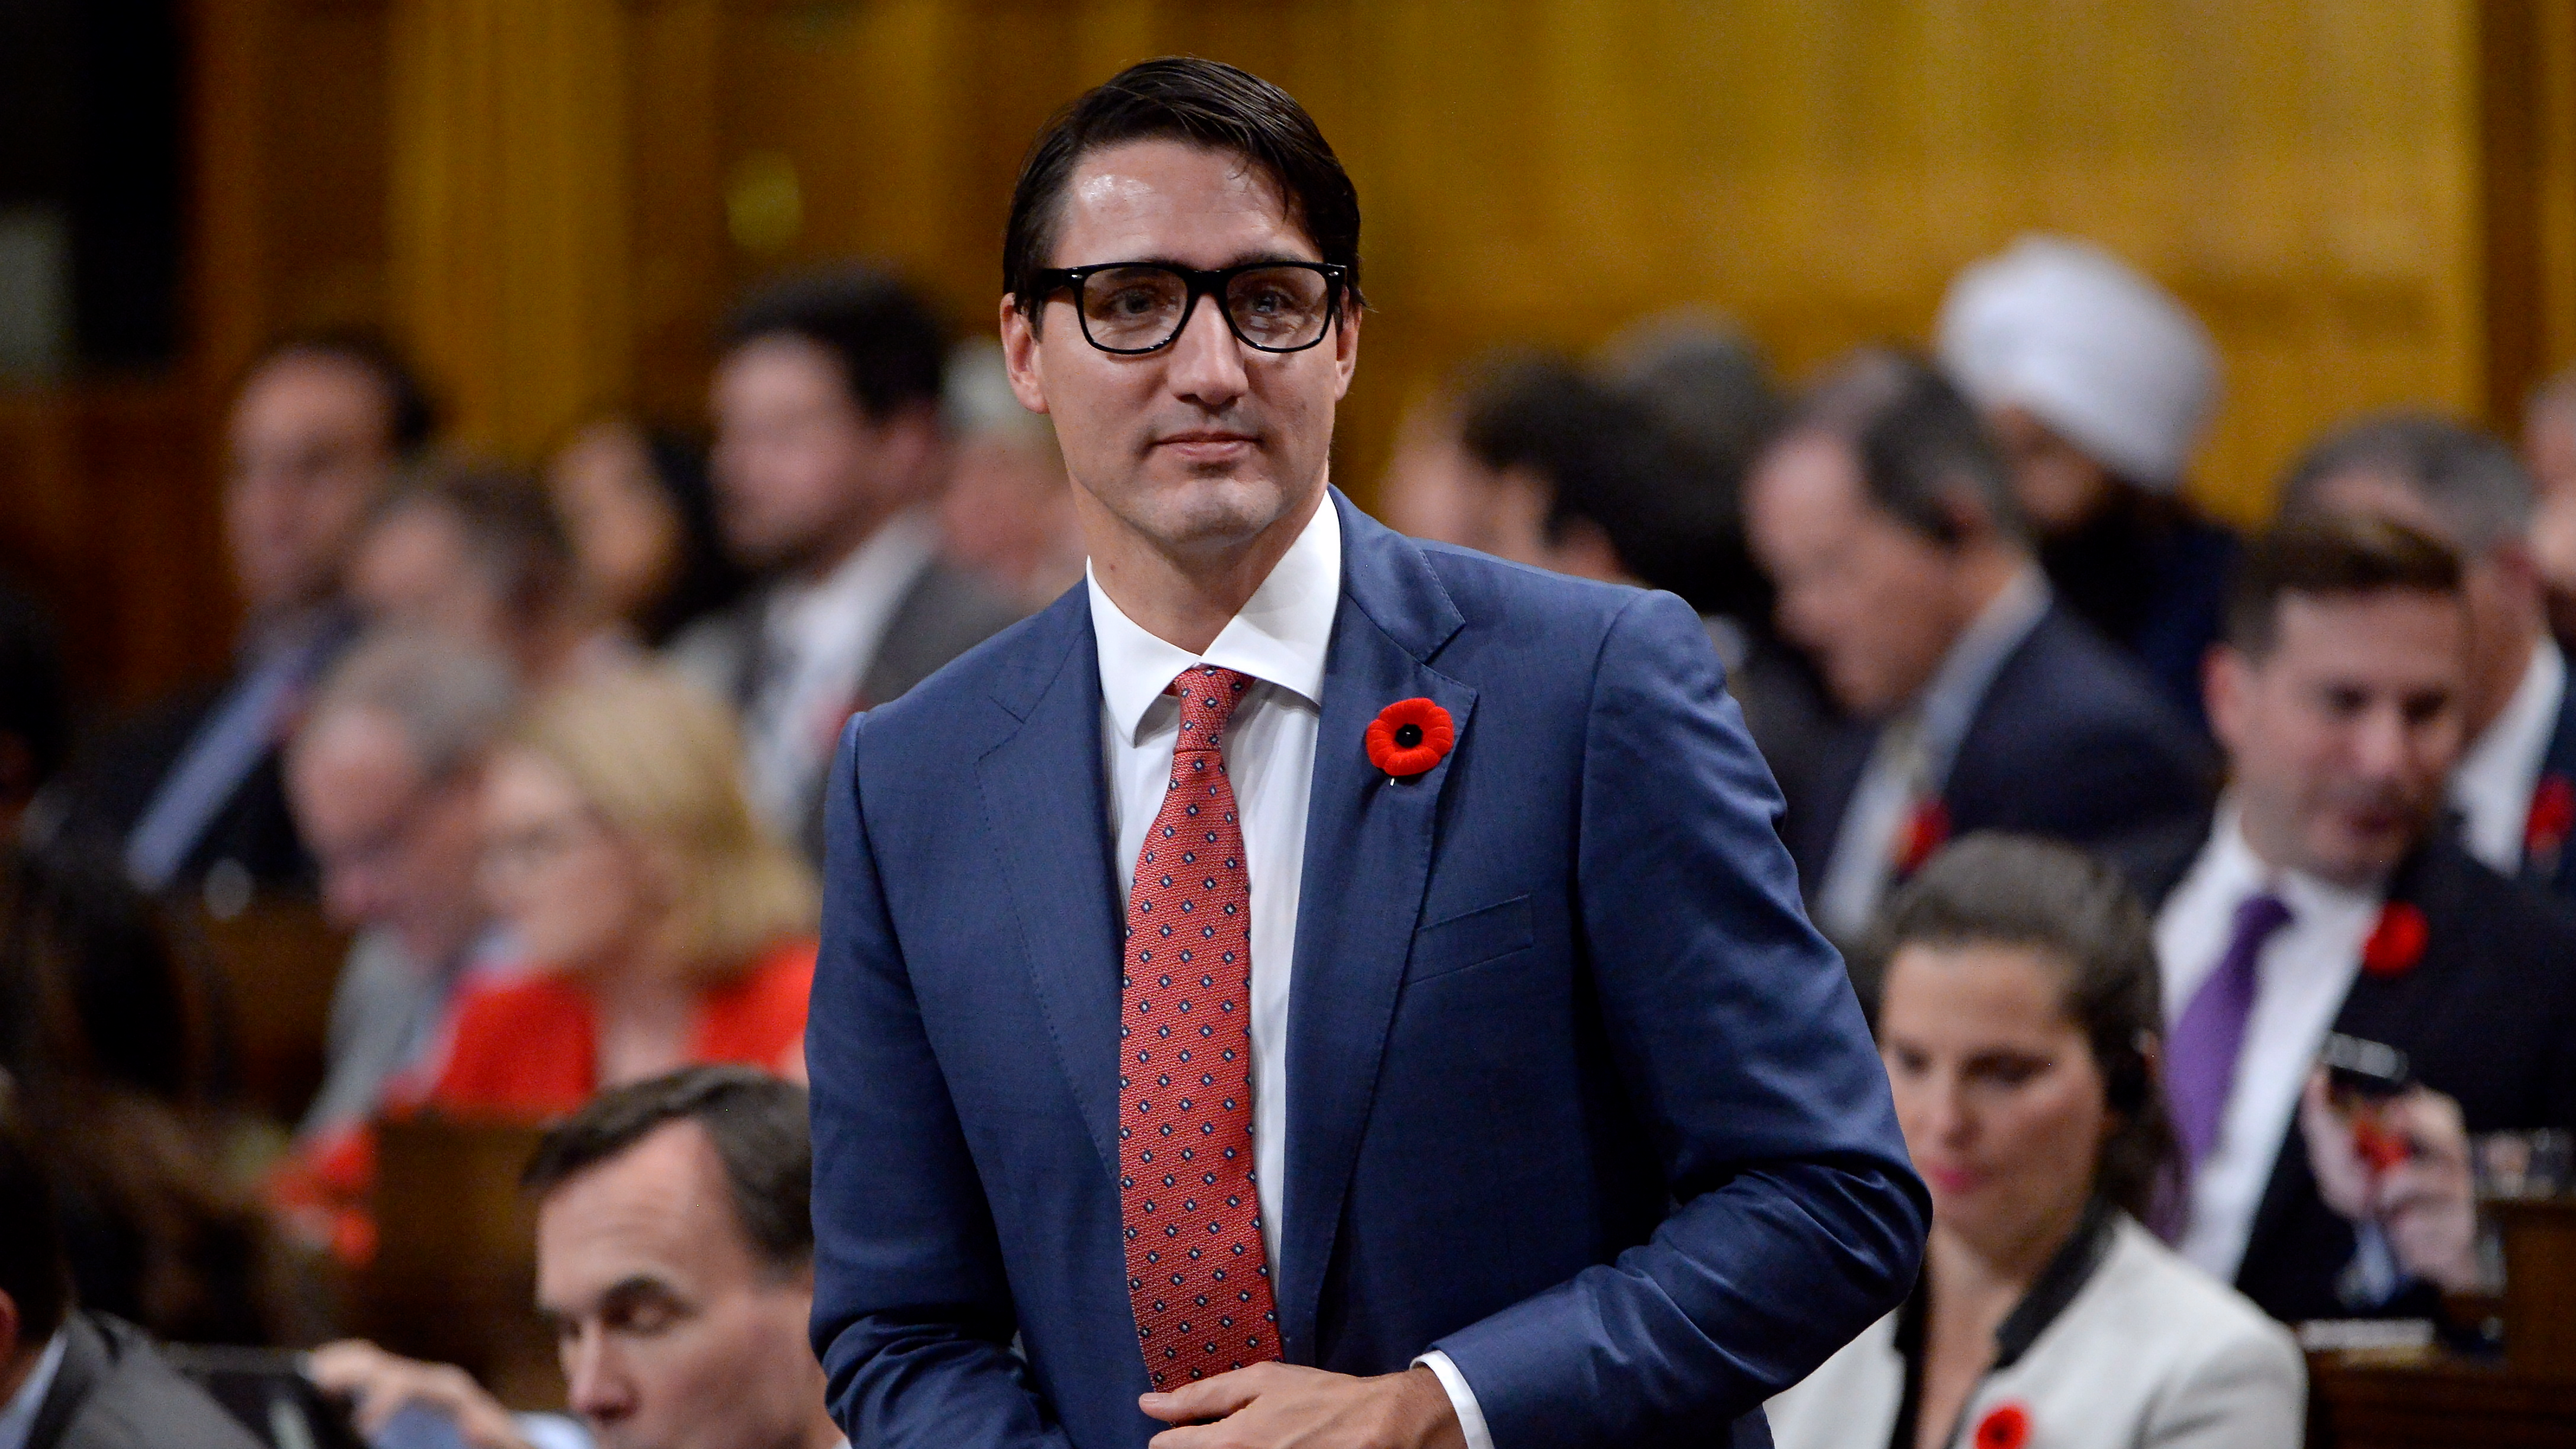 Canadian Prime Minister Justin Trudeau's Clark Kent/Superman Costume Was Brilliant